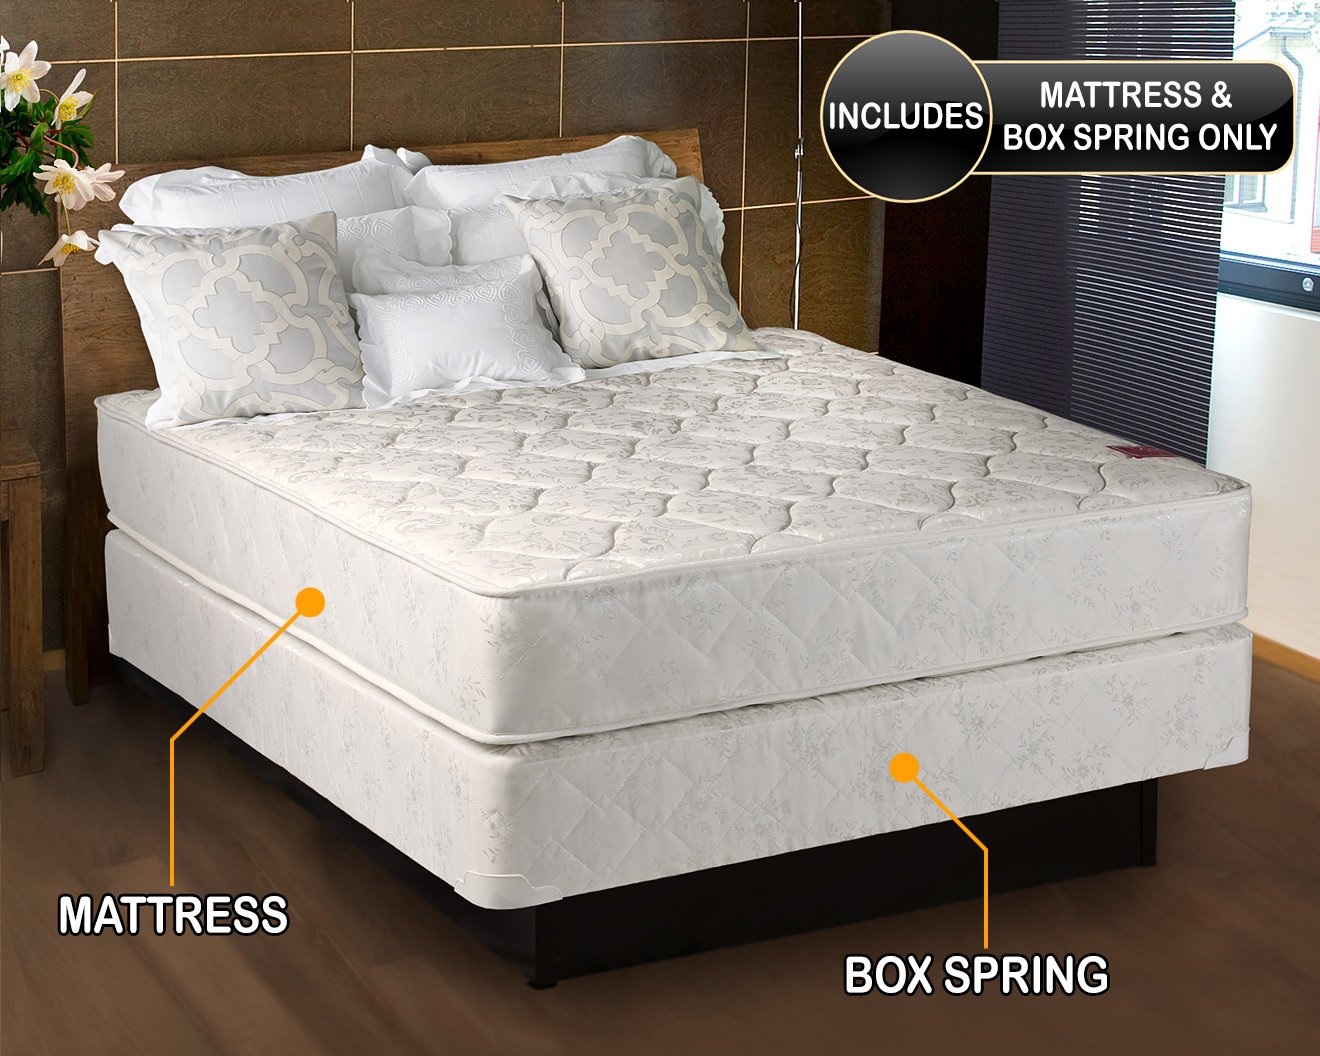 Legacy Medium Firm Full Size (54''x75''x7'') Mattress and Box Spring Set - Fully Assembled, Orthopedic, Good Back Support, Sleep System with Enhance Support and Longlasting by Dream Solutions USA